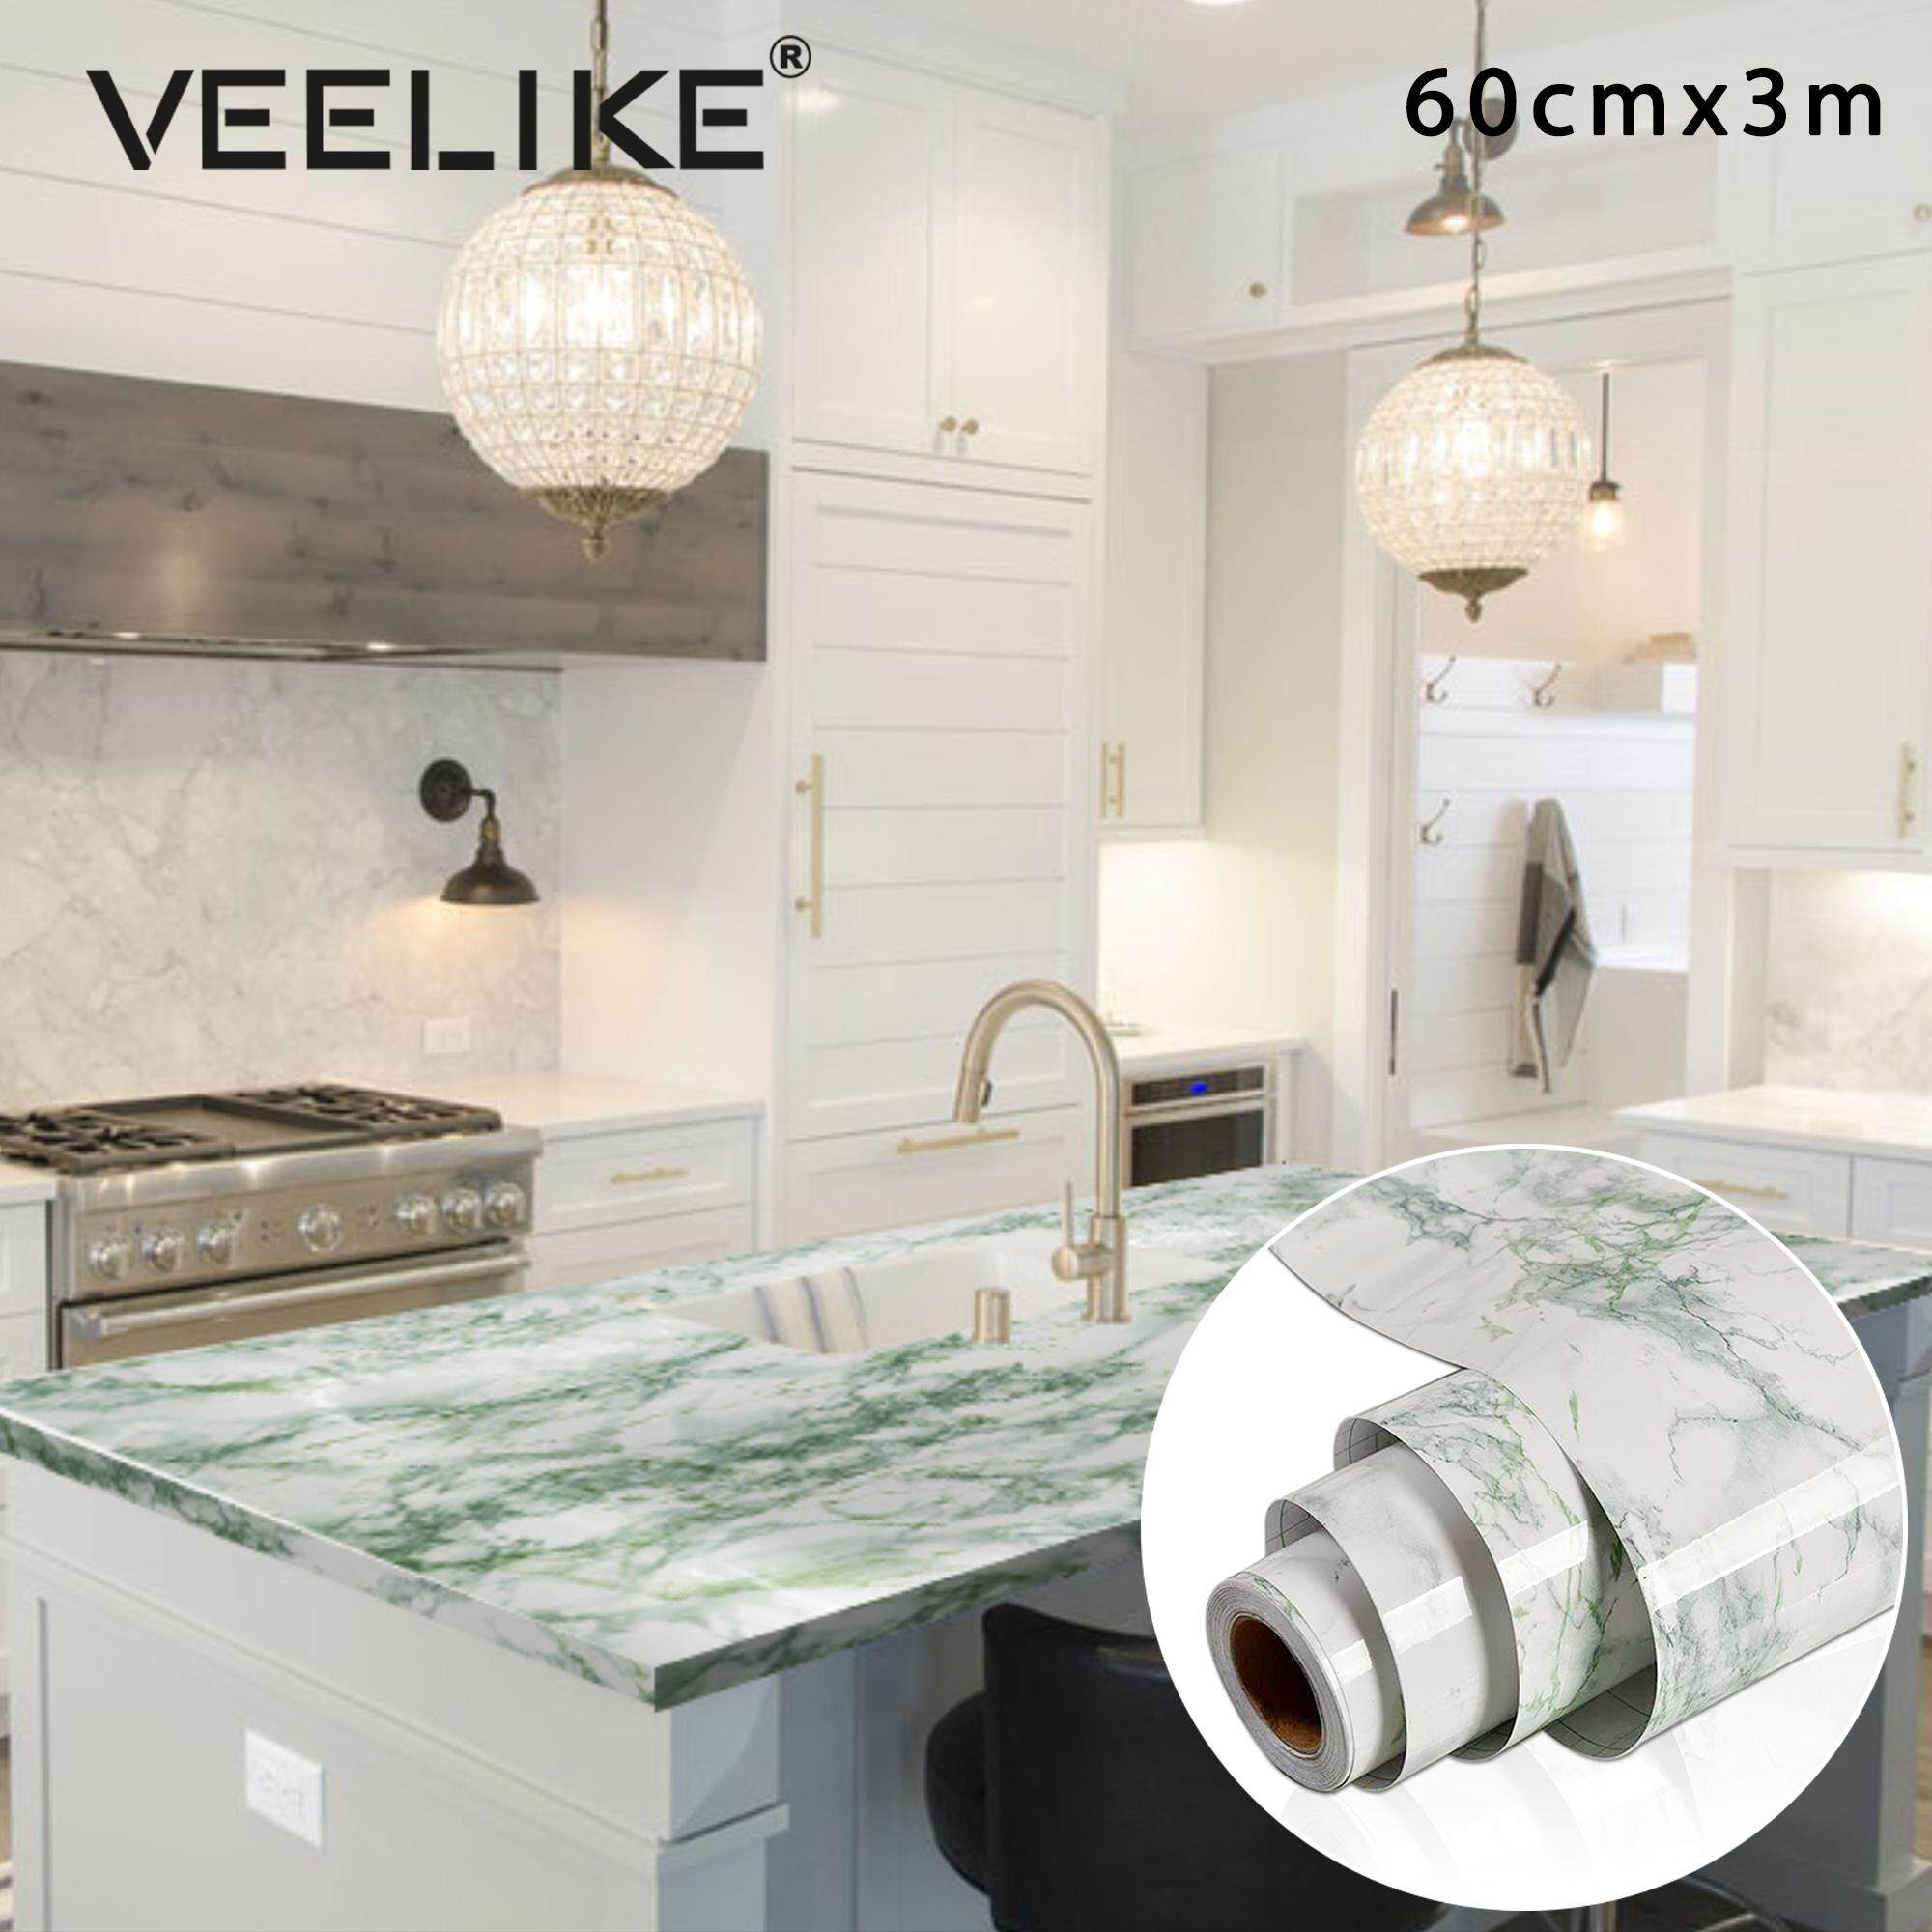 Nyc Subway Map Bedroom Wall Decal.Hot Sale 60cmx300cm Marble Vinyl Film Self Adhesive Wallpaper For Bathroom Kitchen Cupboard Countertops Contact Paper Pvc Waterproof Wall Stickers